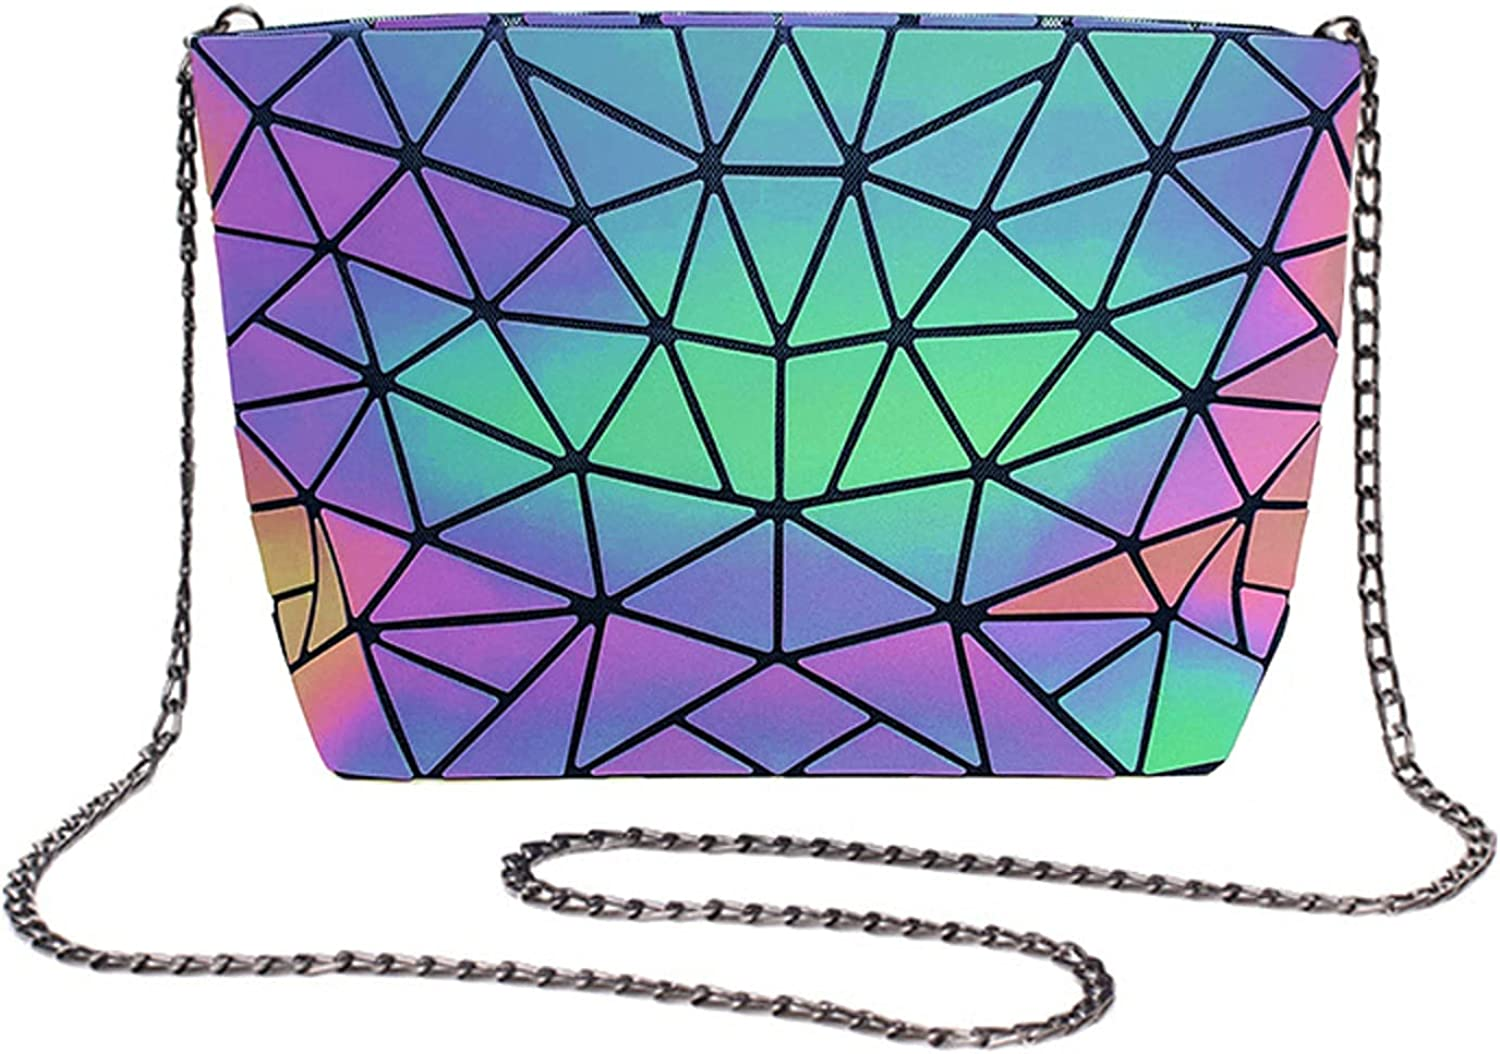 Crossbody Bags For Women Color Changes Chain Luminous Geometric Purse Clutch Girls Evening Bags Lady